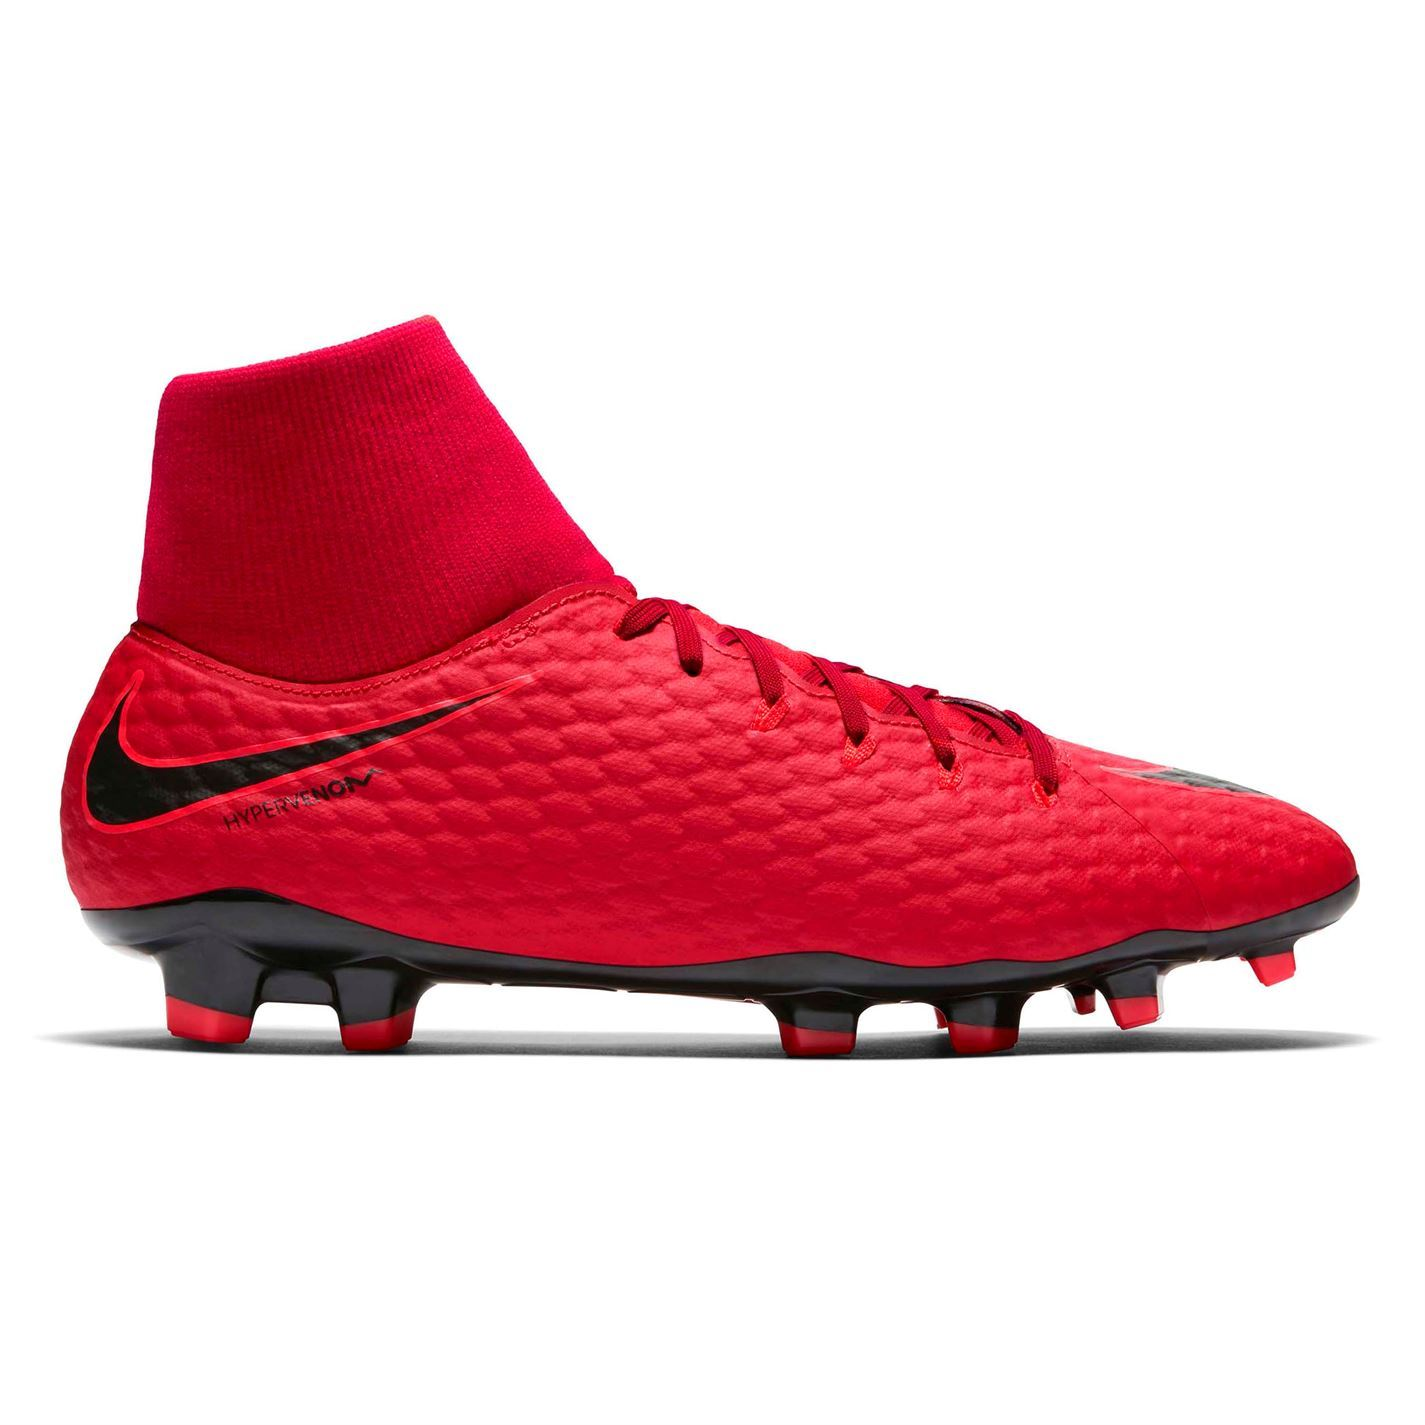 0ee608e88ea ... Nike Hypervenom Phelon DF FG Firm Ground Football Boots Mens Red Soccer  Cleats ...